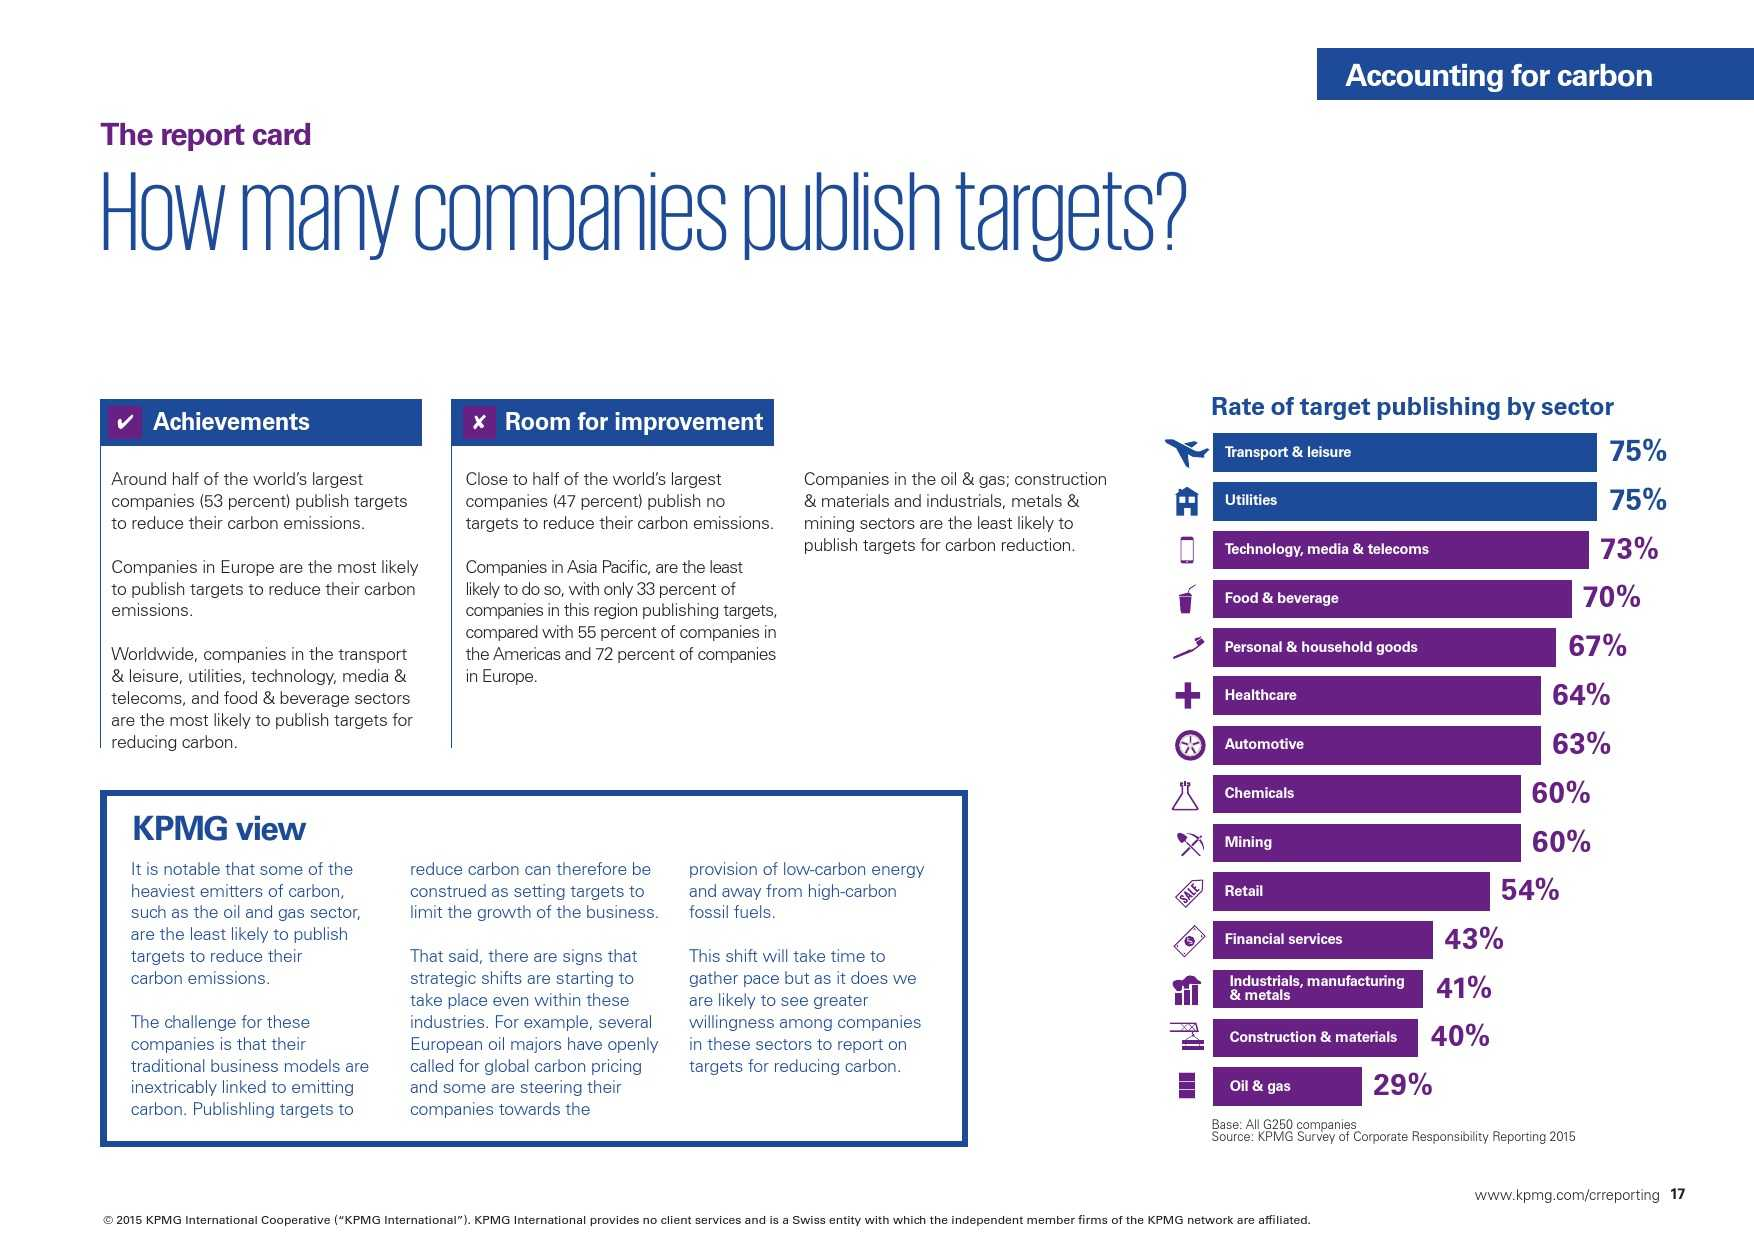 kpmg-international-survey-of-corporate-responsibility-reporting-2015_000017